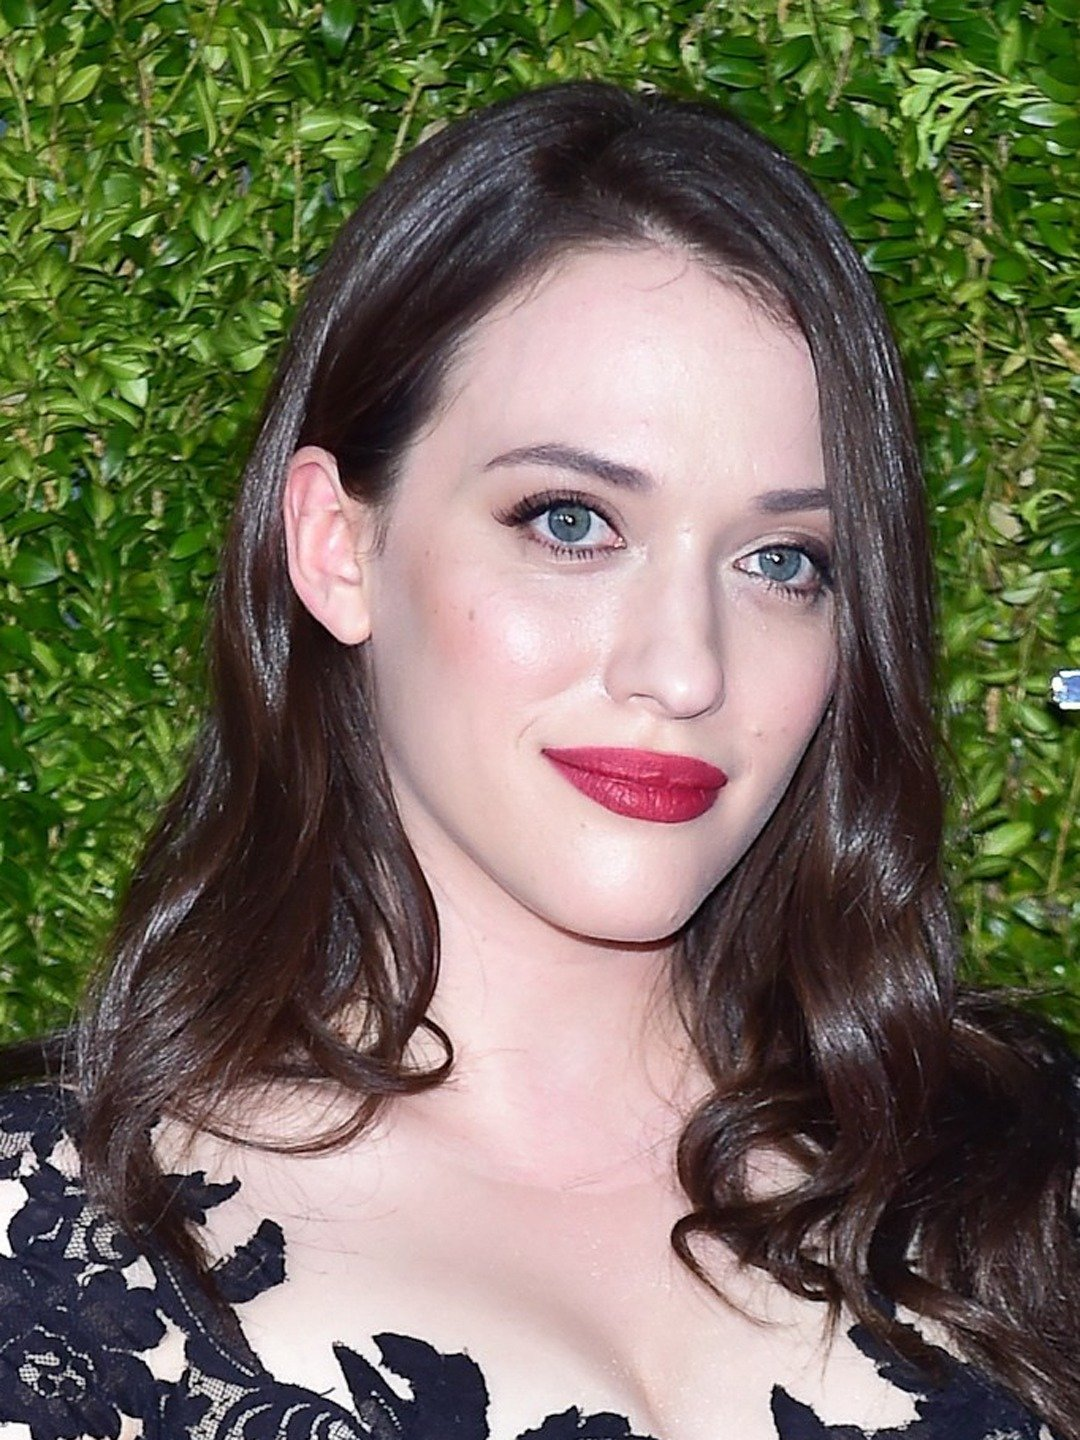 How tall is Kat Dennings?